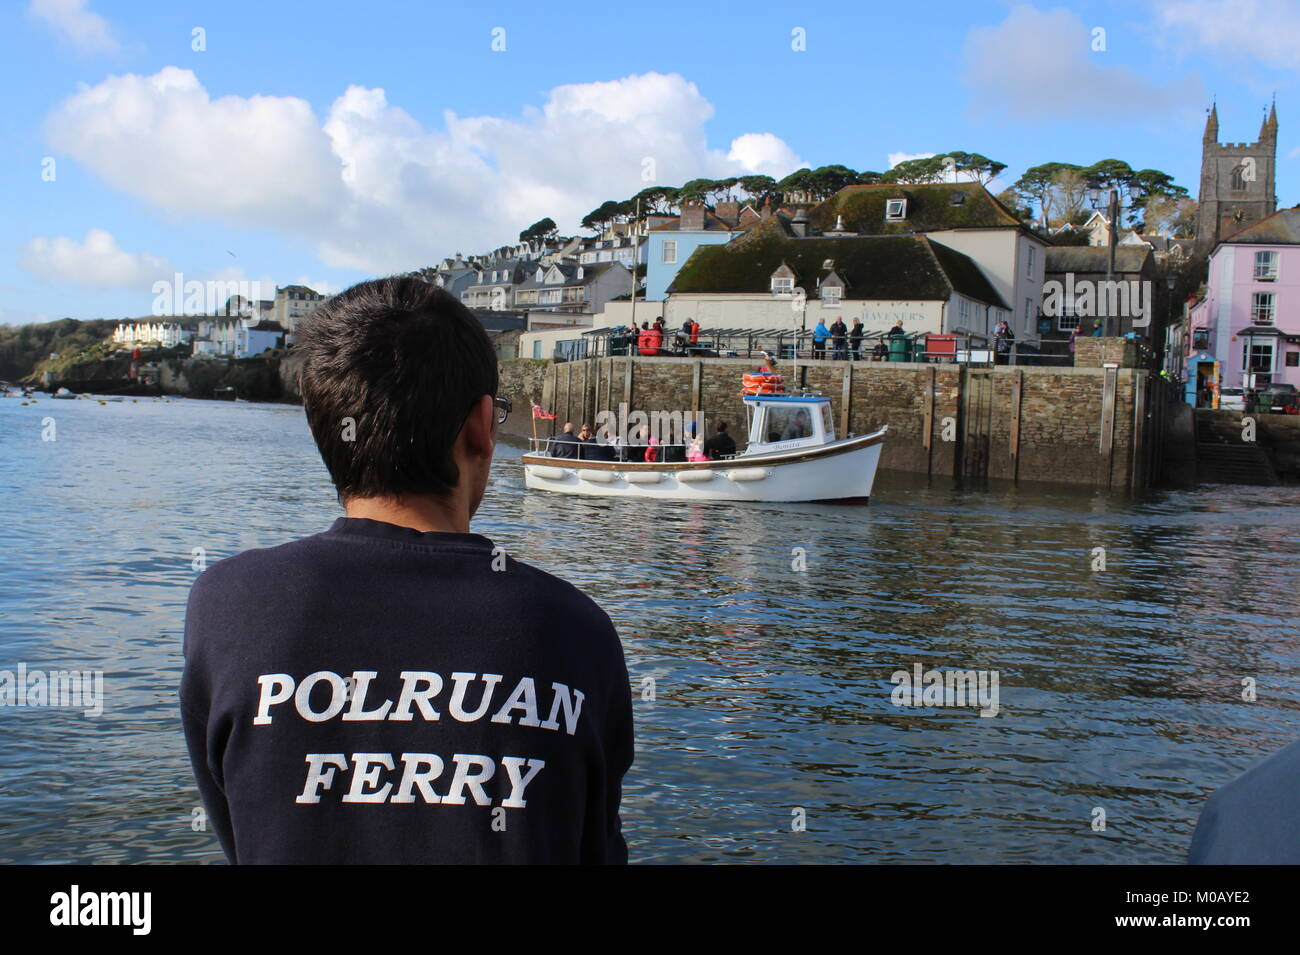 The back of the ferryman wearing a black tshirt with Polruan written on it as the ferry reaches Fowey harbour and Stock Photo